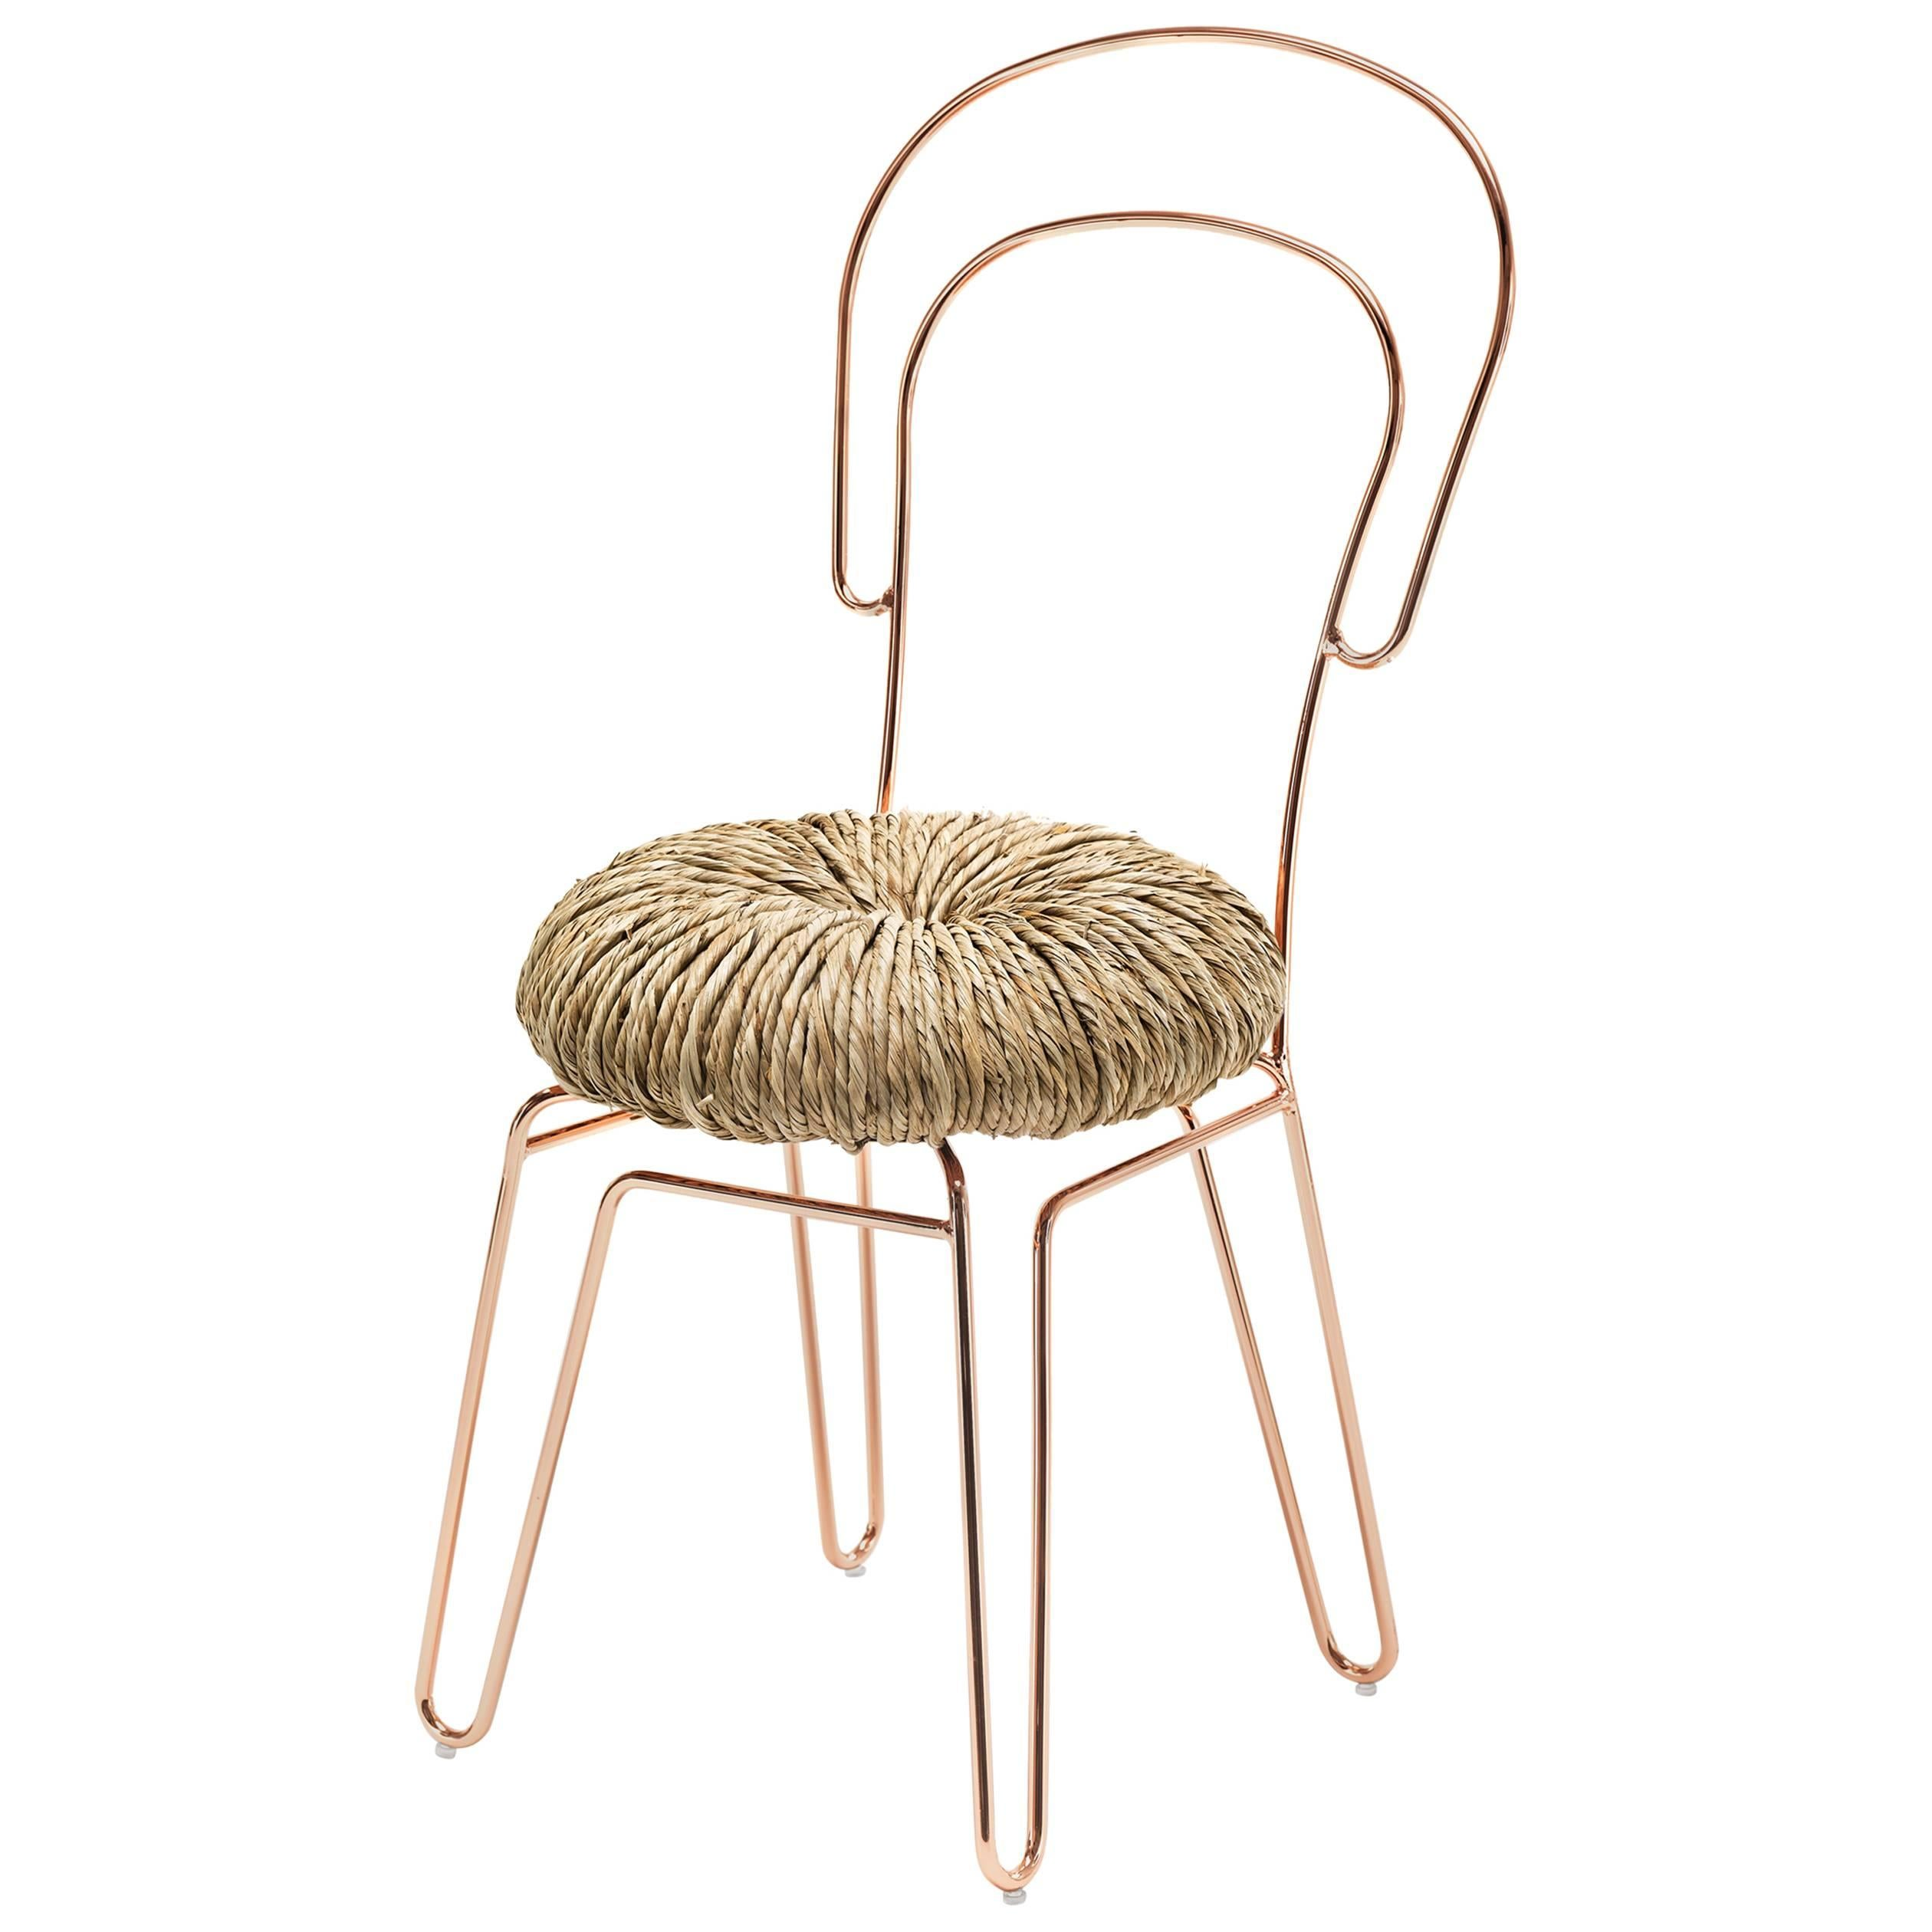 Donut Chair U2018Set Of 2u2019 In Copper Finish By Alessandra Baldereschi U0026 Mogg